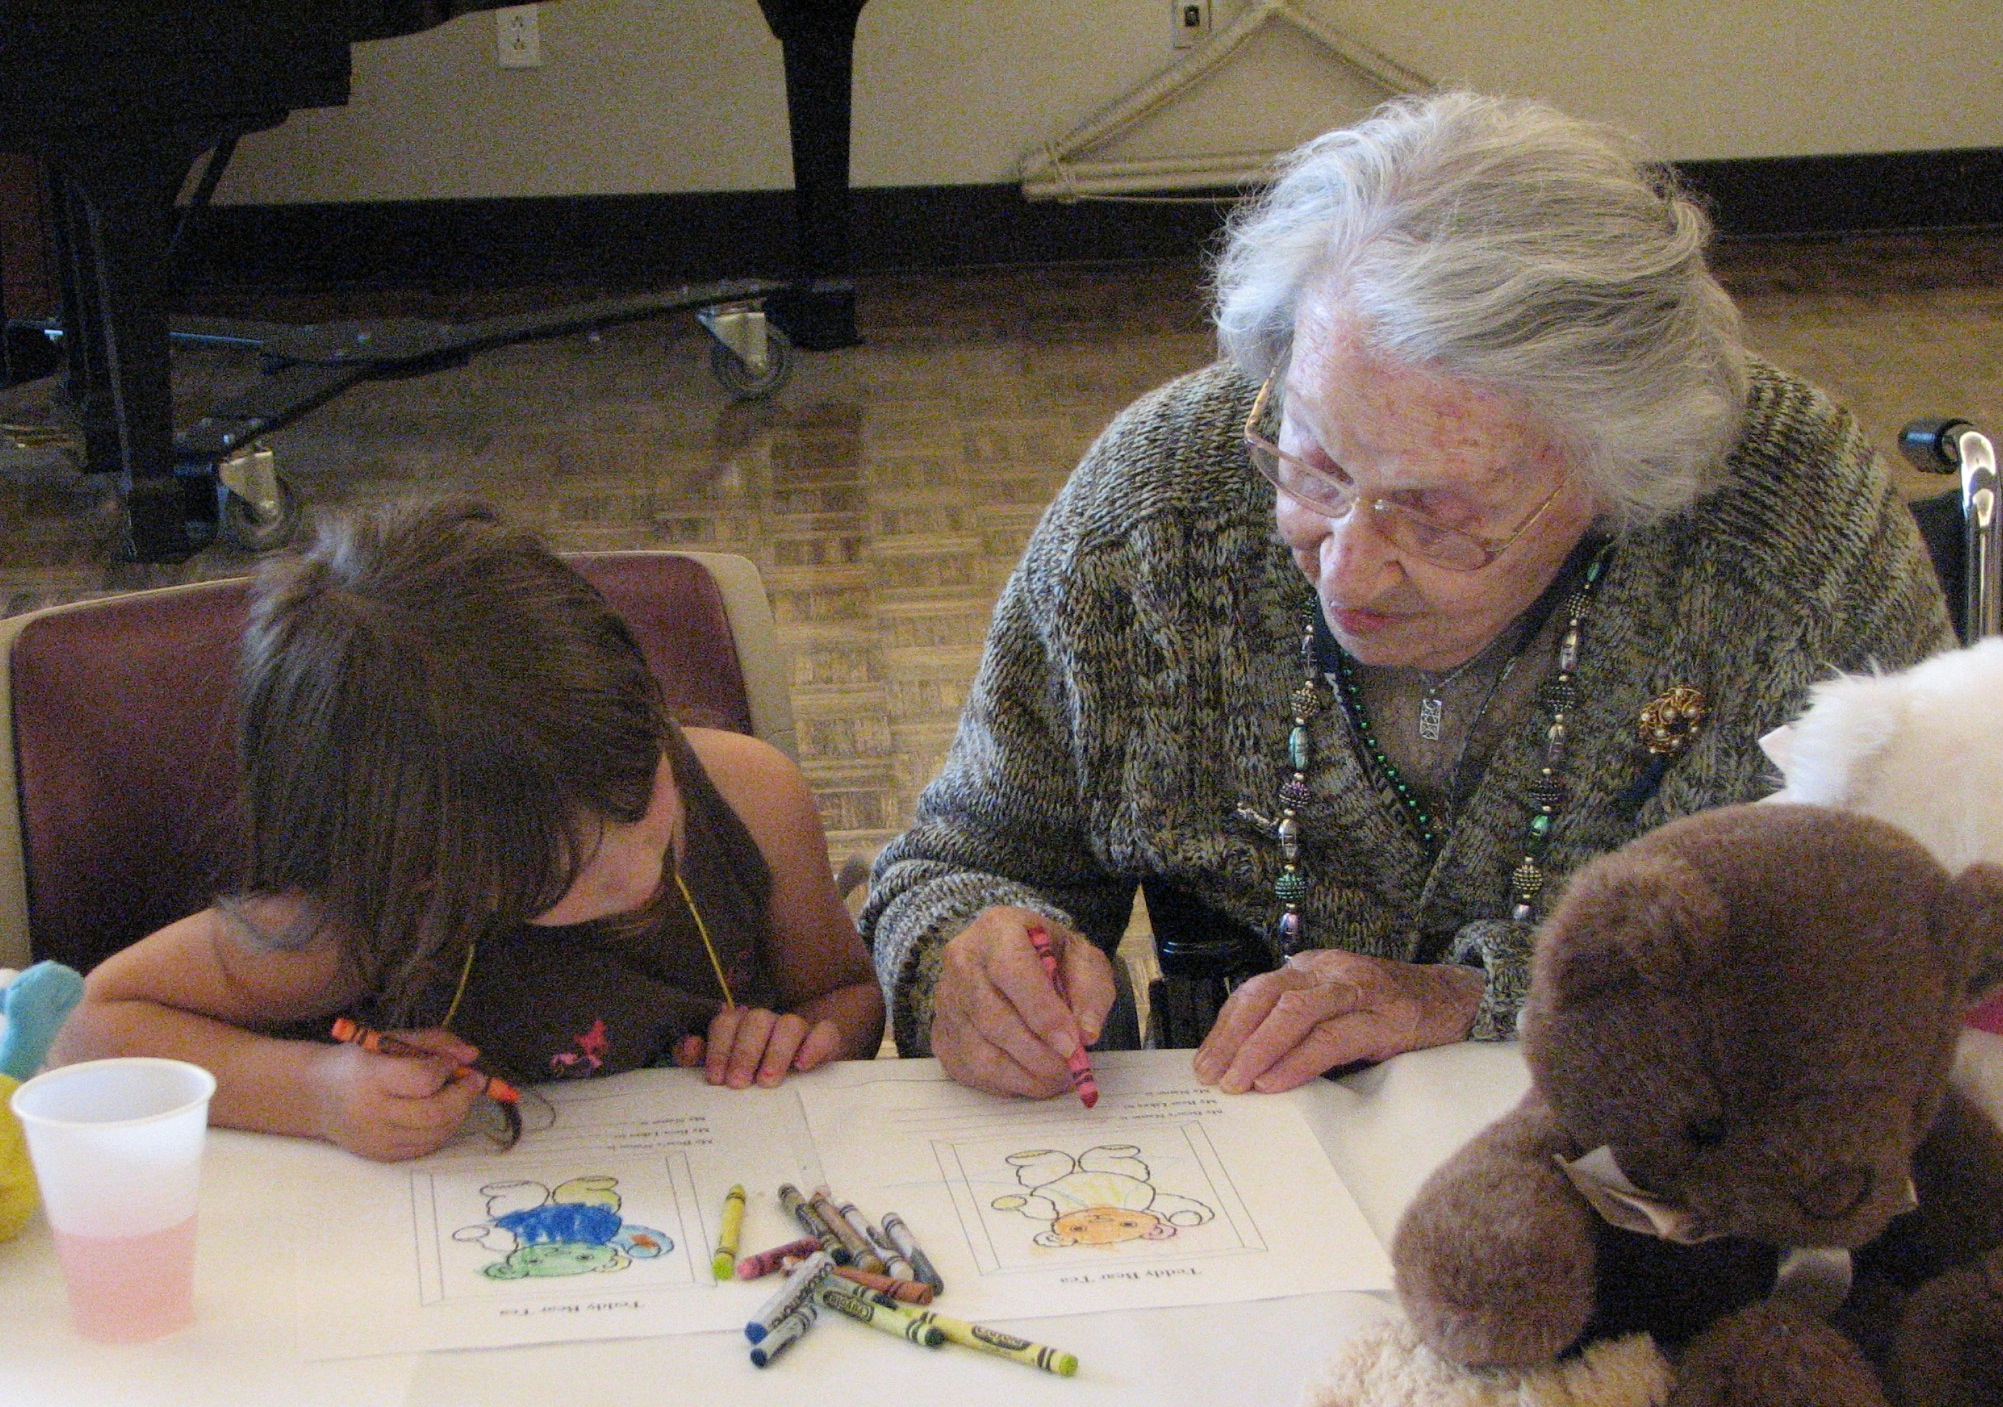 Theresa Hirschbein, 102, a resident of the Jewish Home and Care Center in Milwaukee, colors with a student from a Jewish day school.